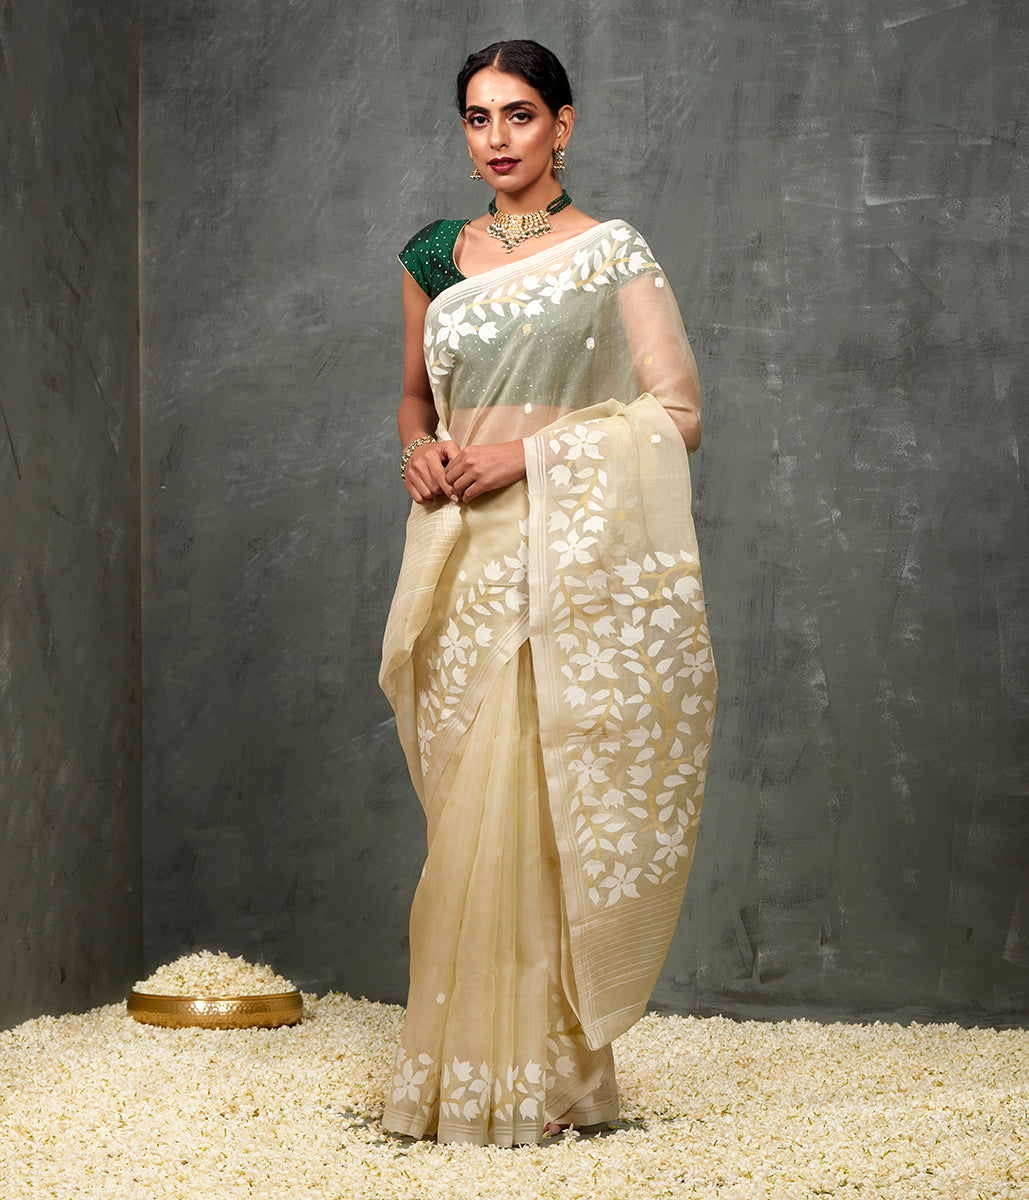 Handwoven Muslin Jamdani Saree in a Pale Pistachio Green color